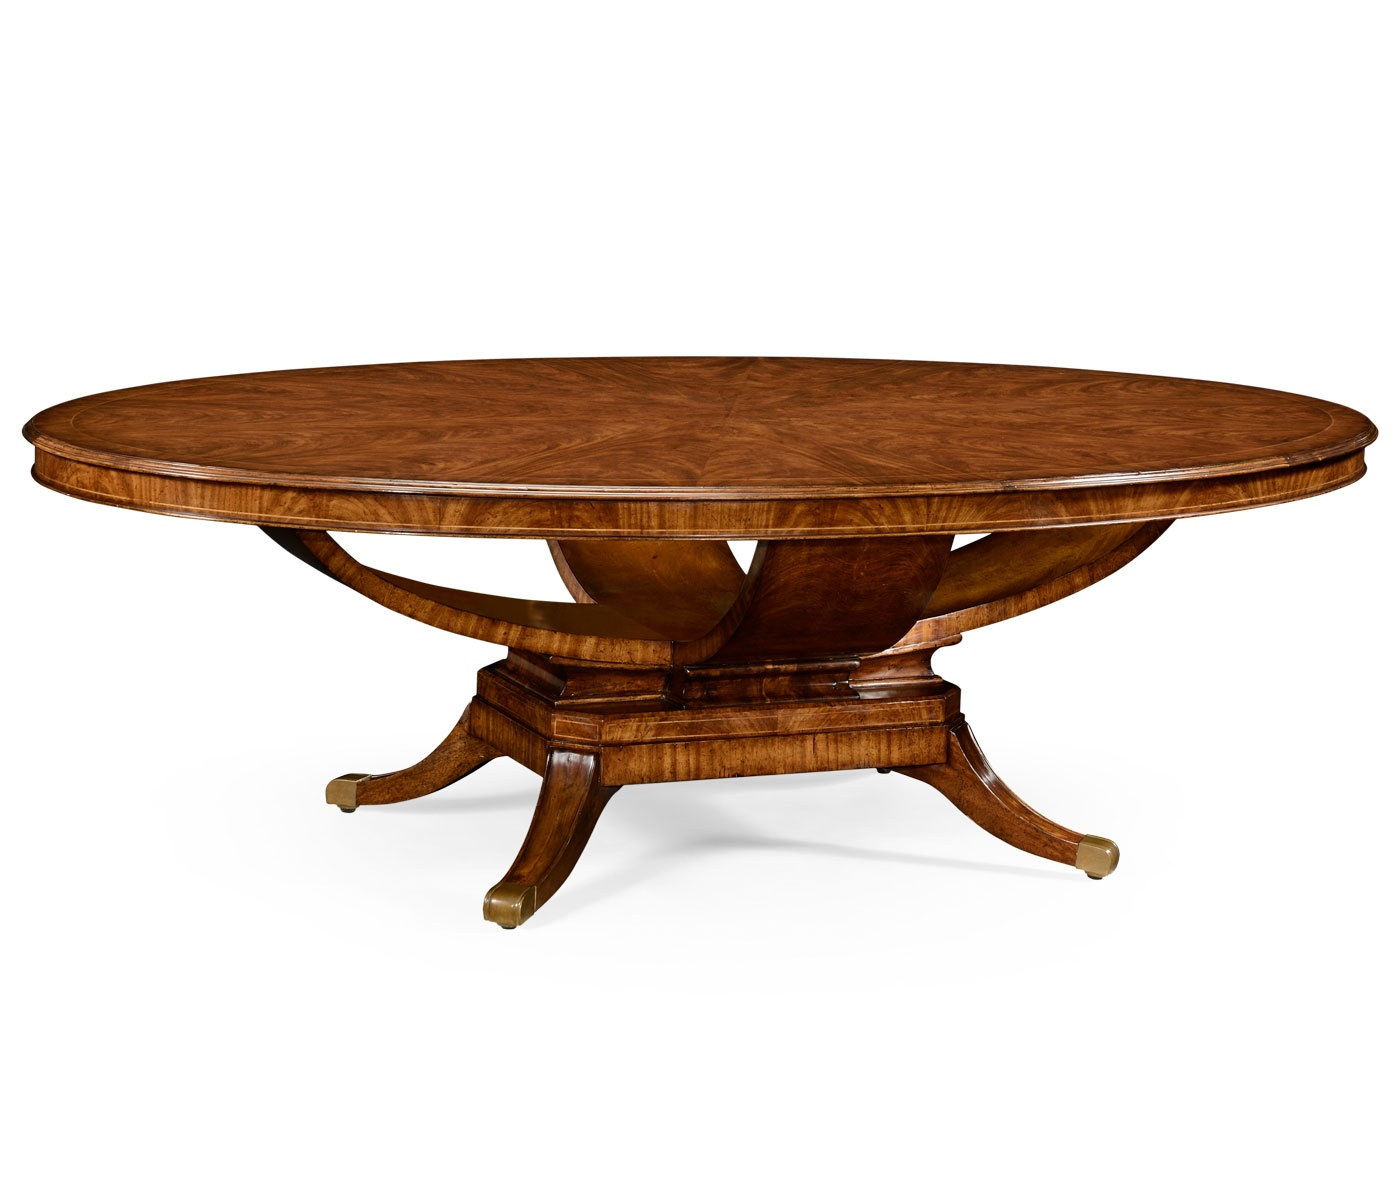 8 seater oval dining table walnut swanky interiors